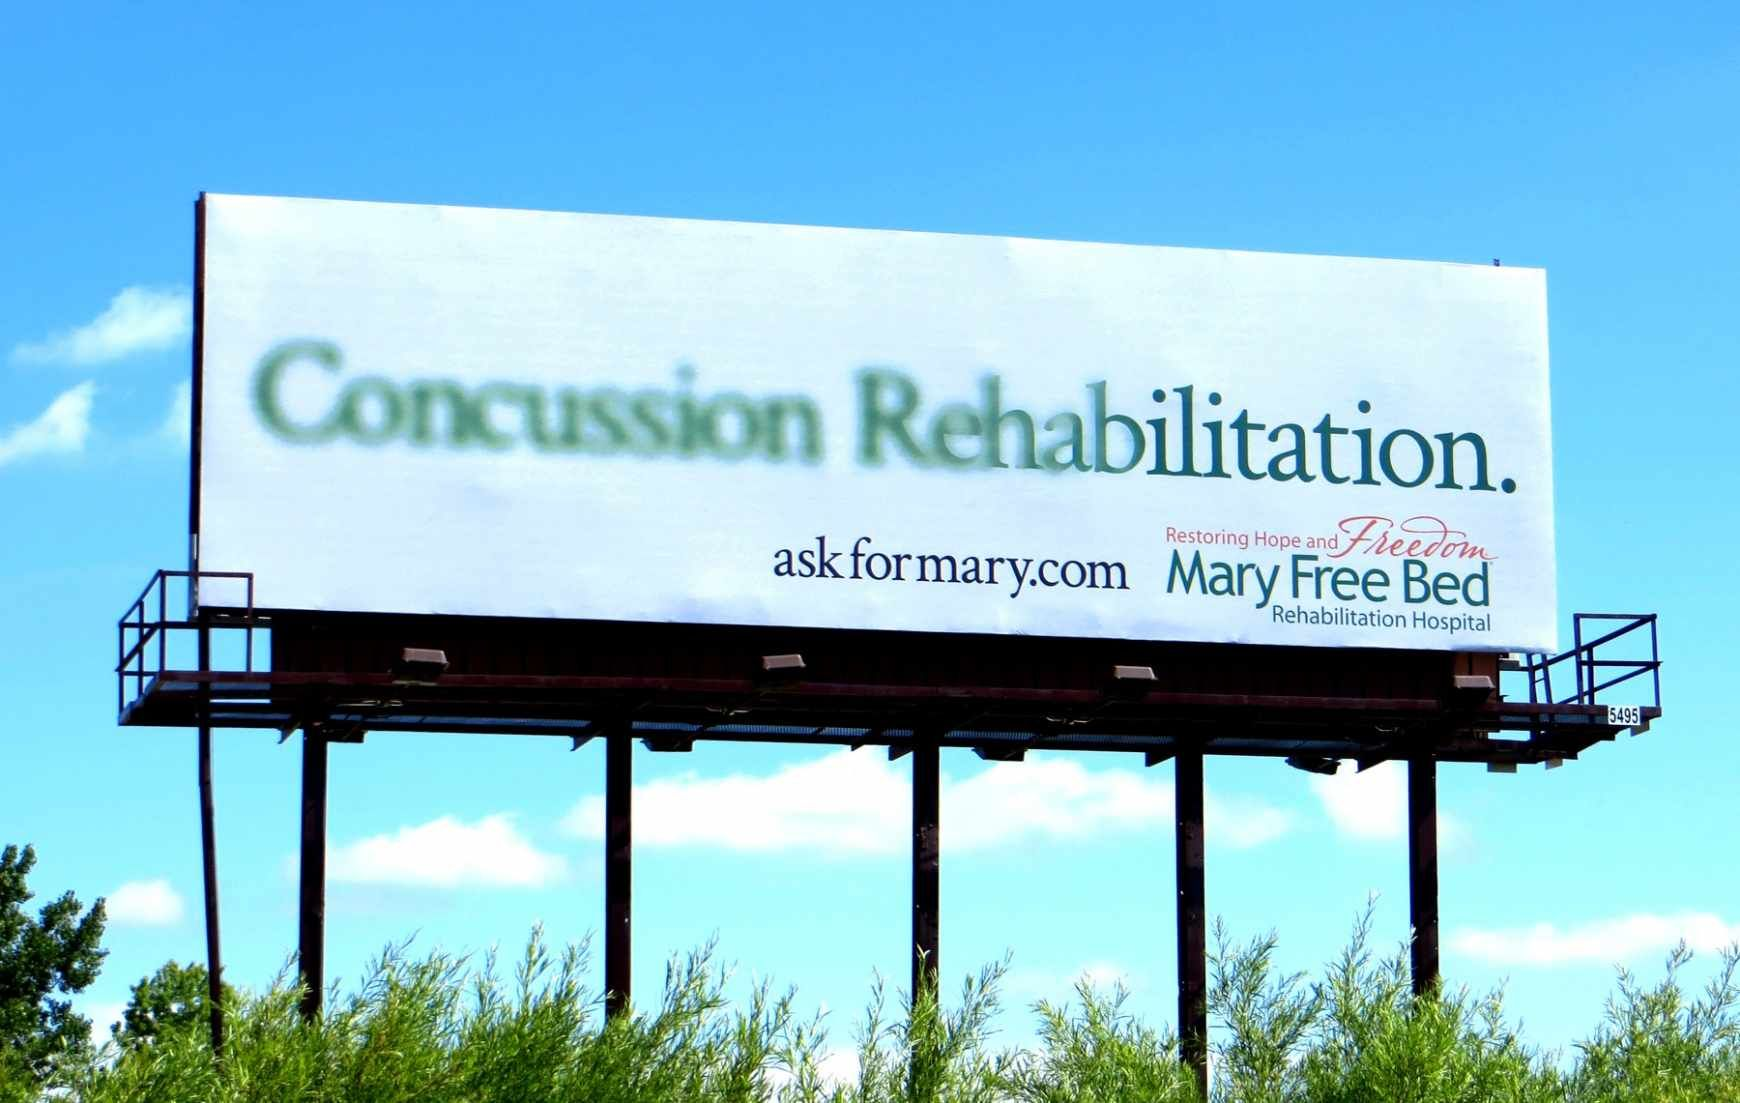 Mary Free Bed Rehabilitation Hospital Concussion